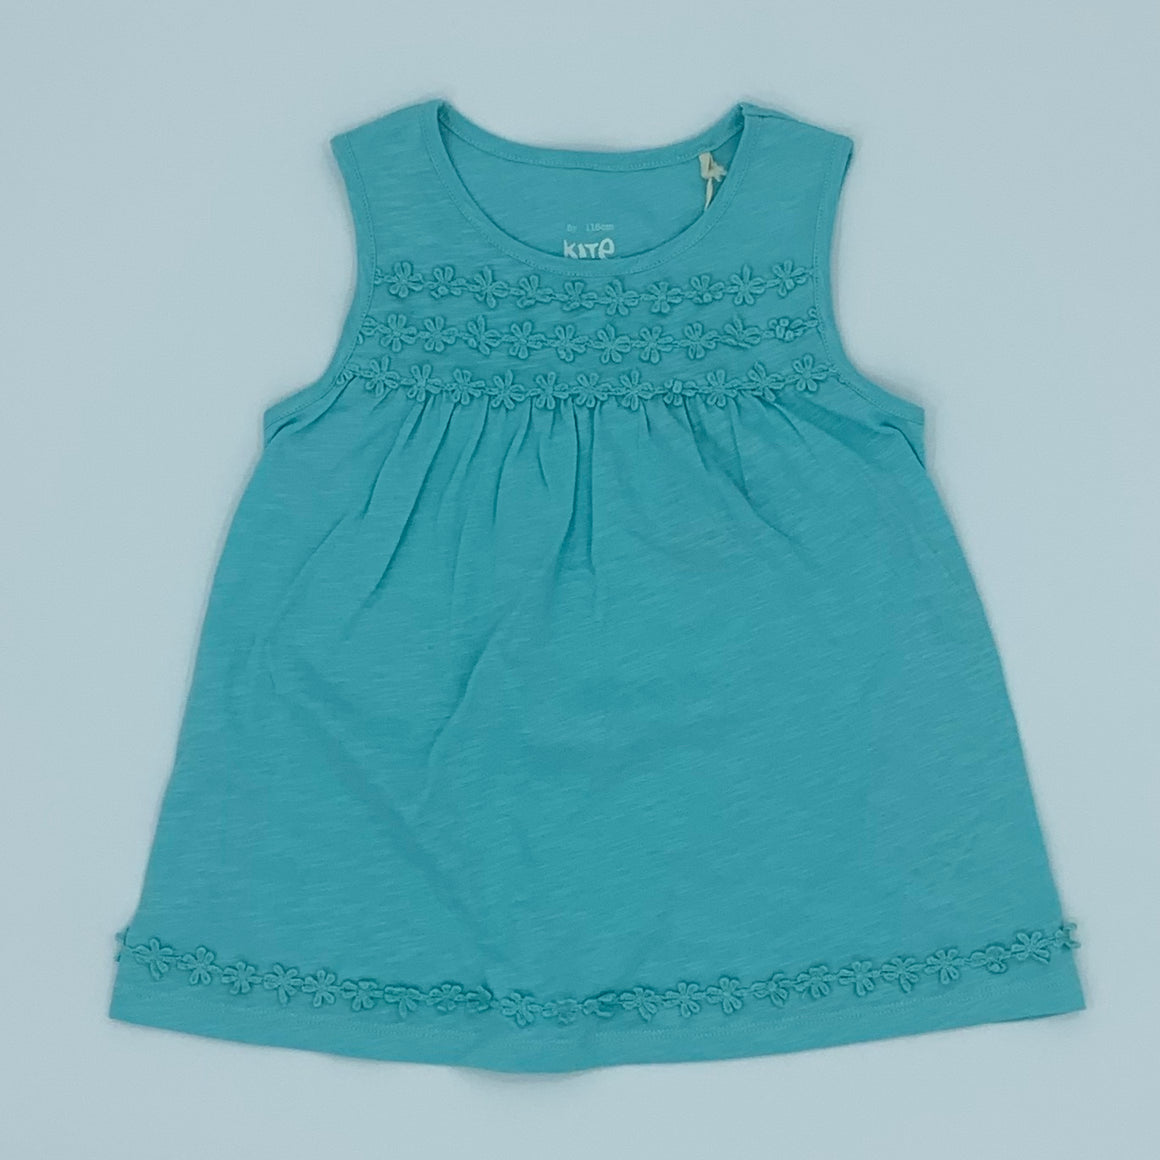 New Kite turquoise lace top size 5-6 years